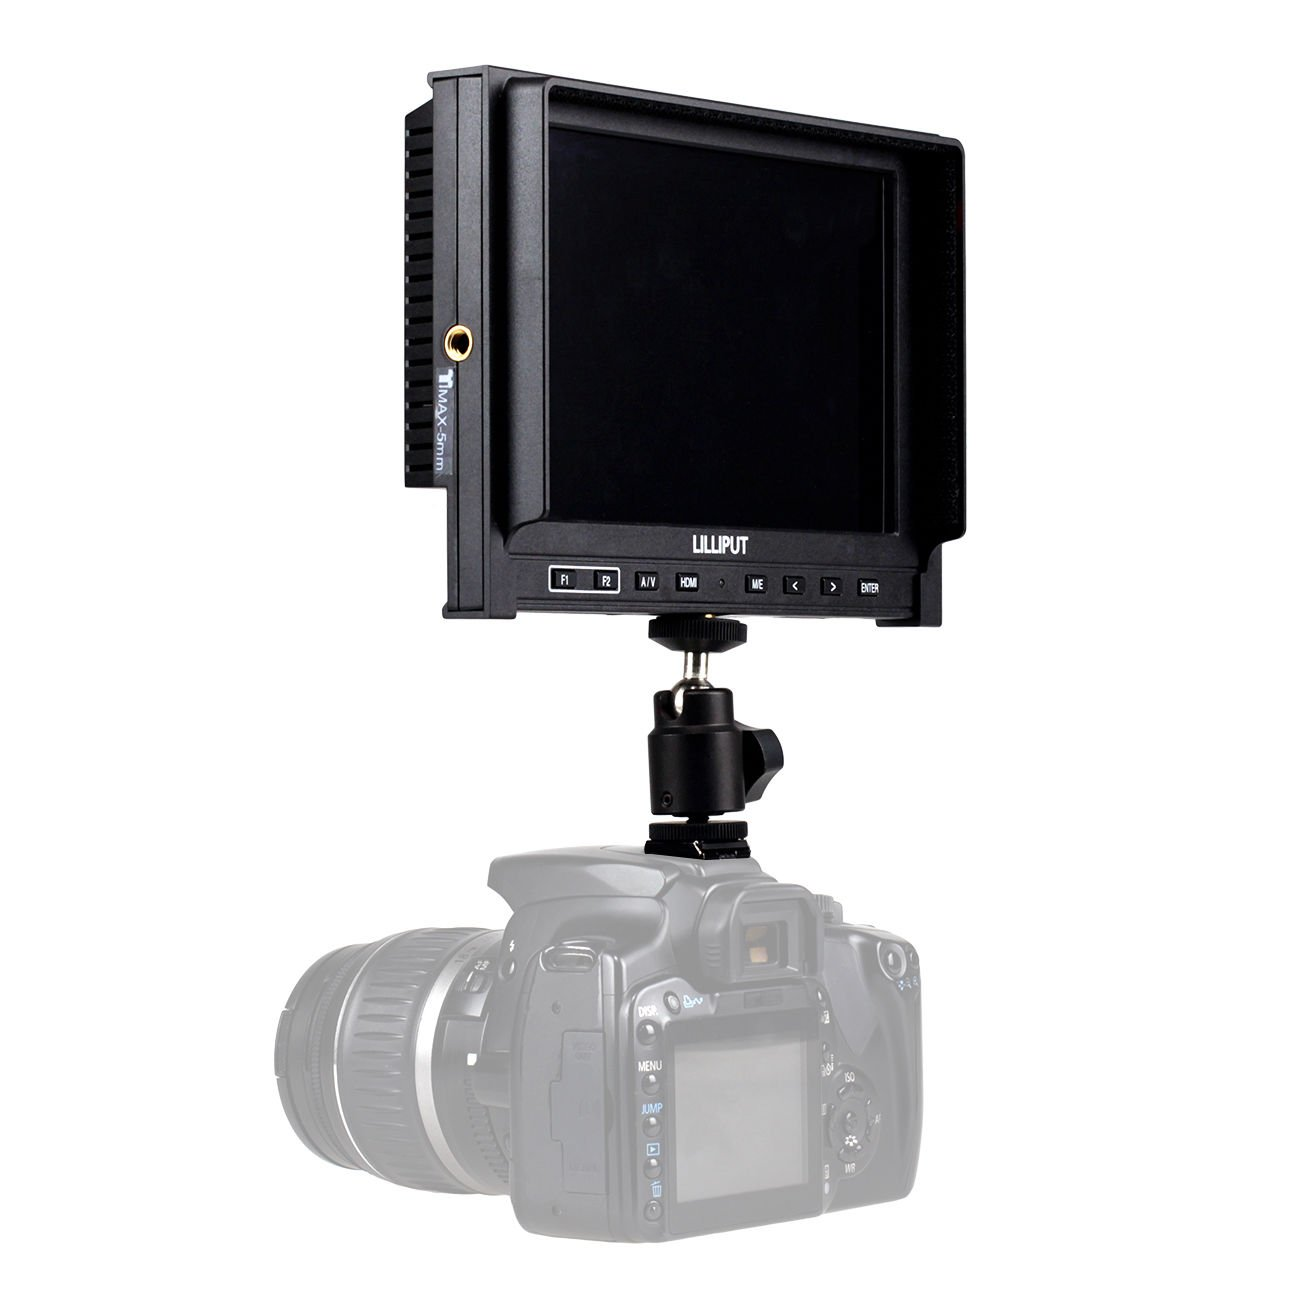 Zhigao High Resolution Lilliput 339 7 IPS Camera Top Monitor HDMI Input AV in Out Put by Zhigao (Image #5)